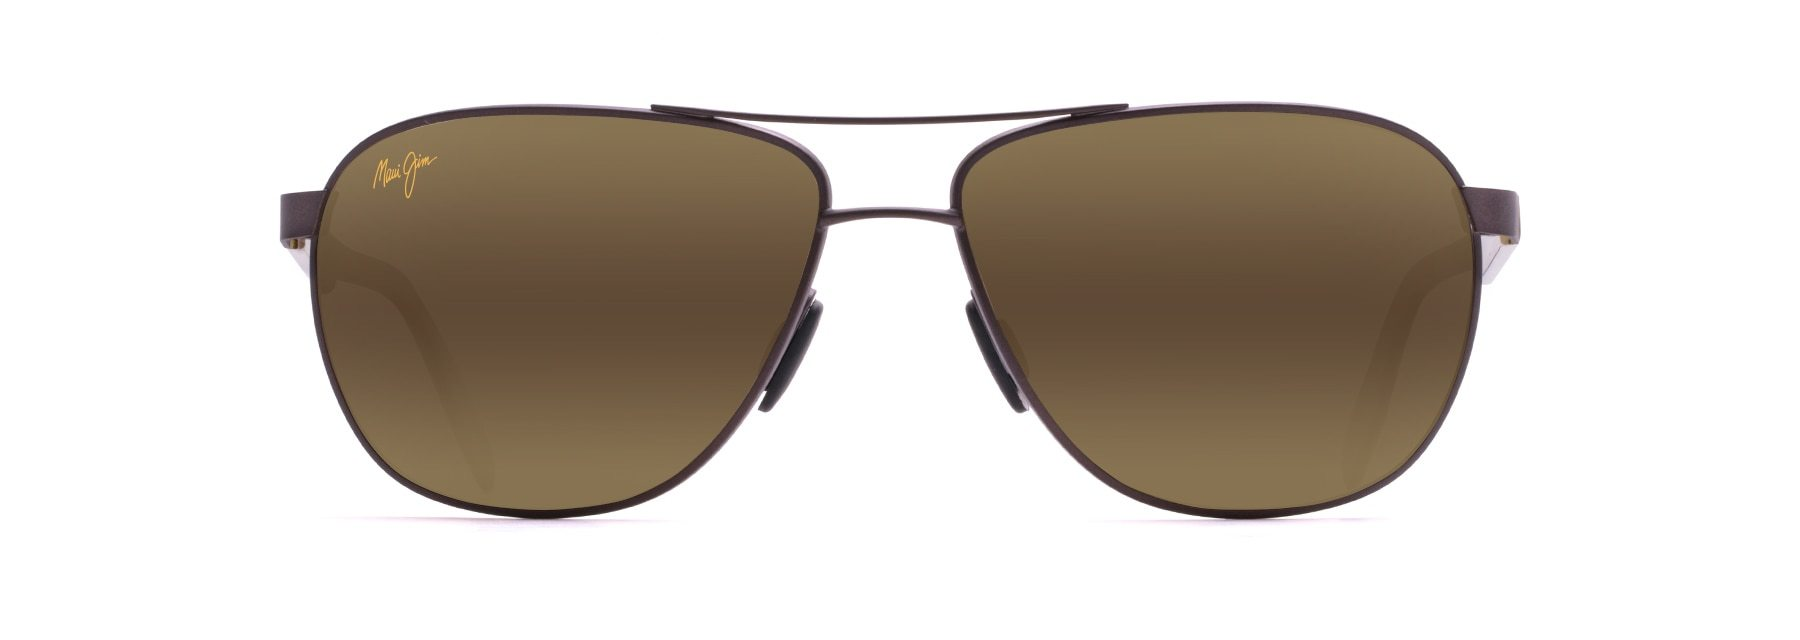 MyMaui Castles MM728-002 Sunglasses